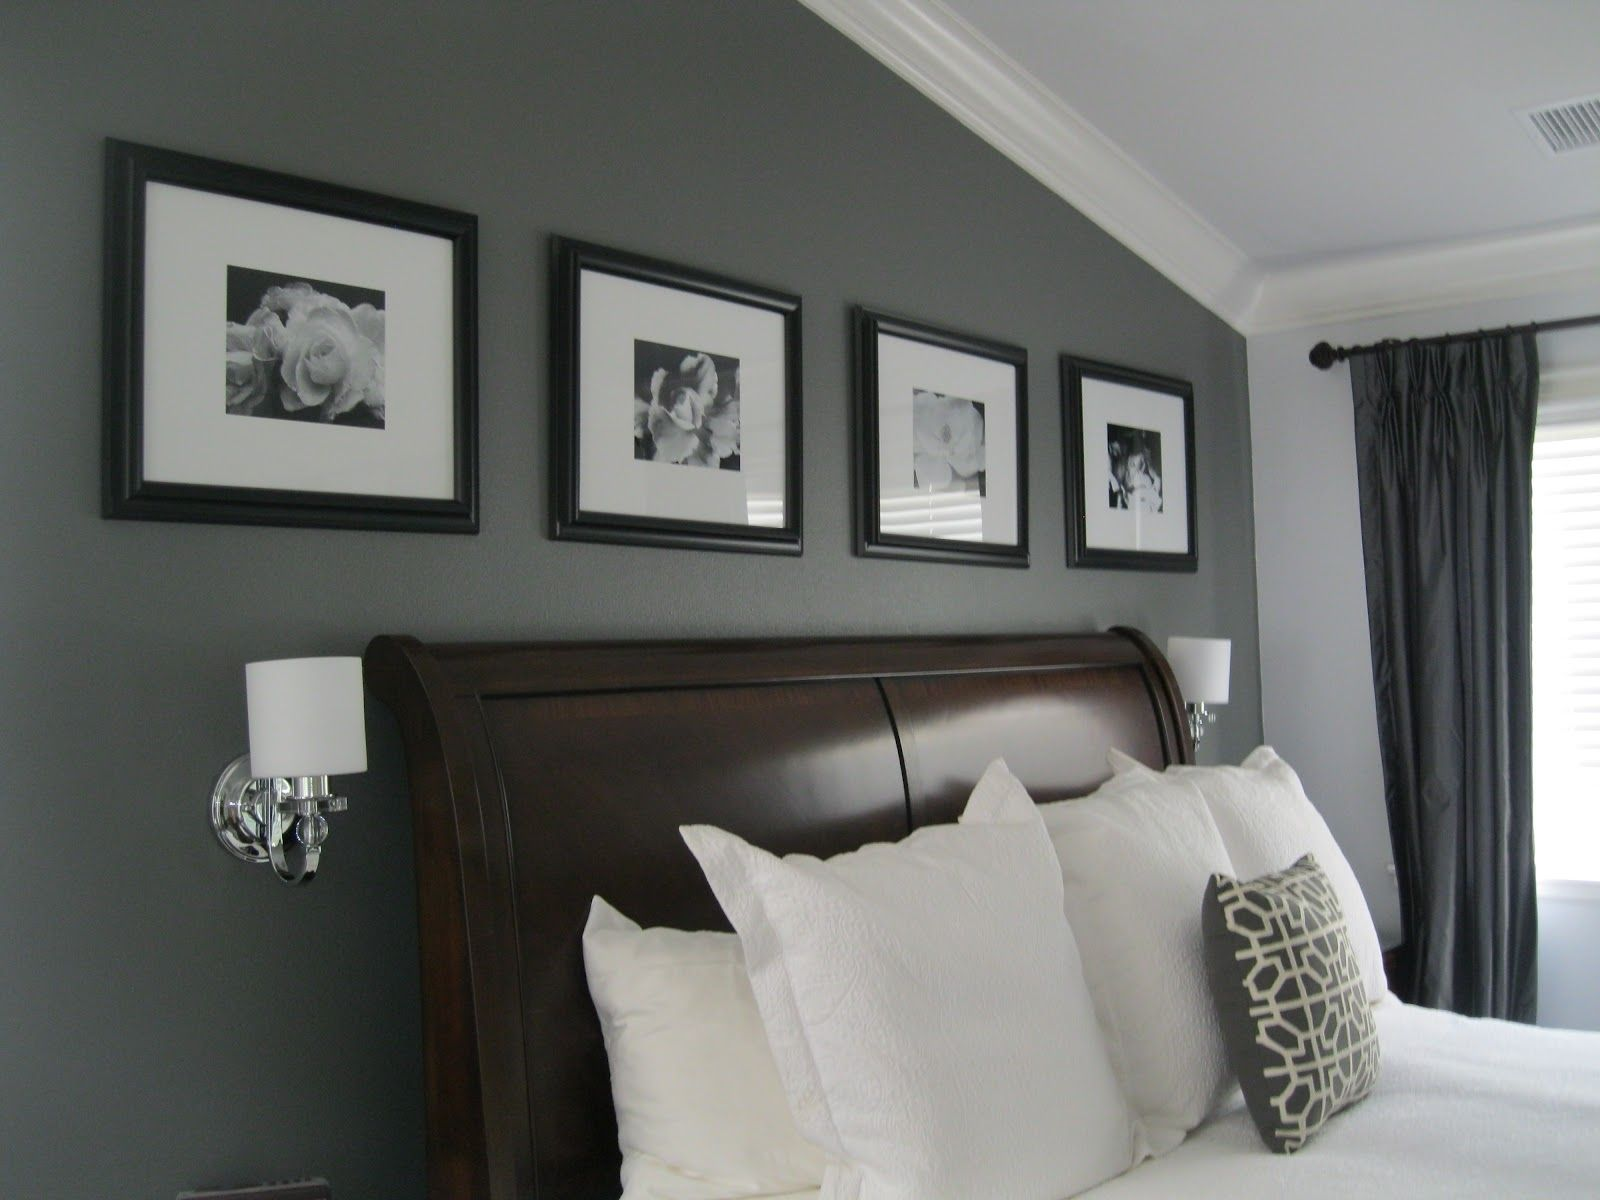 Grey Paint For Bedroom Walls Wall Slate Gray Fashionable Room With Paint Contemporary Family Rooms Bedroom Paint Colors Grey Grey Bedroom Paint